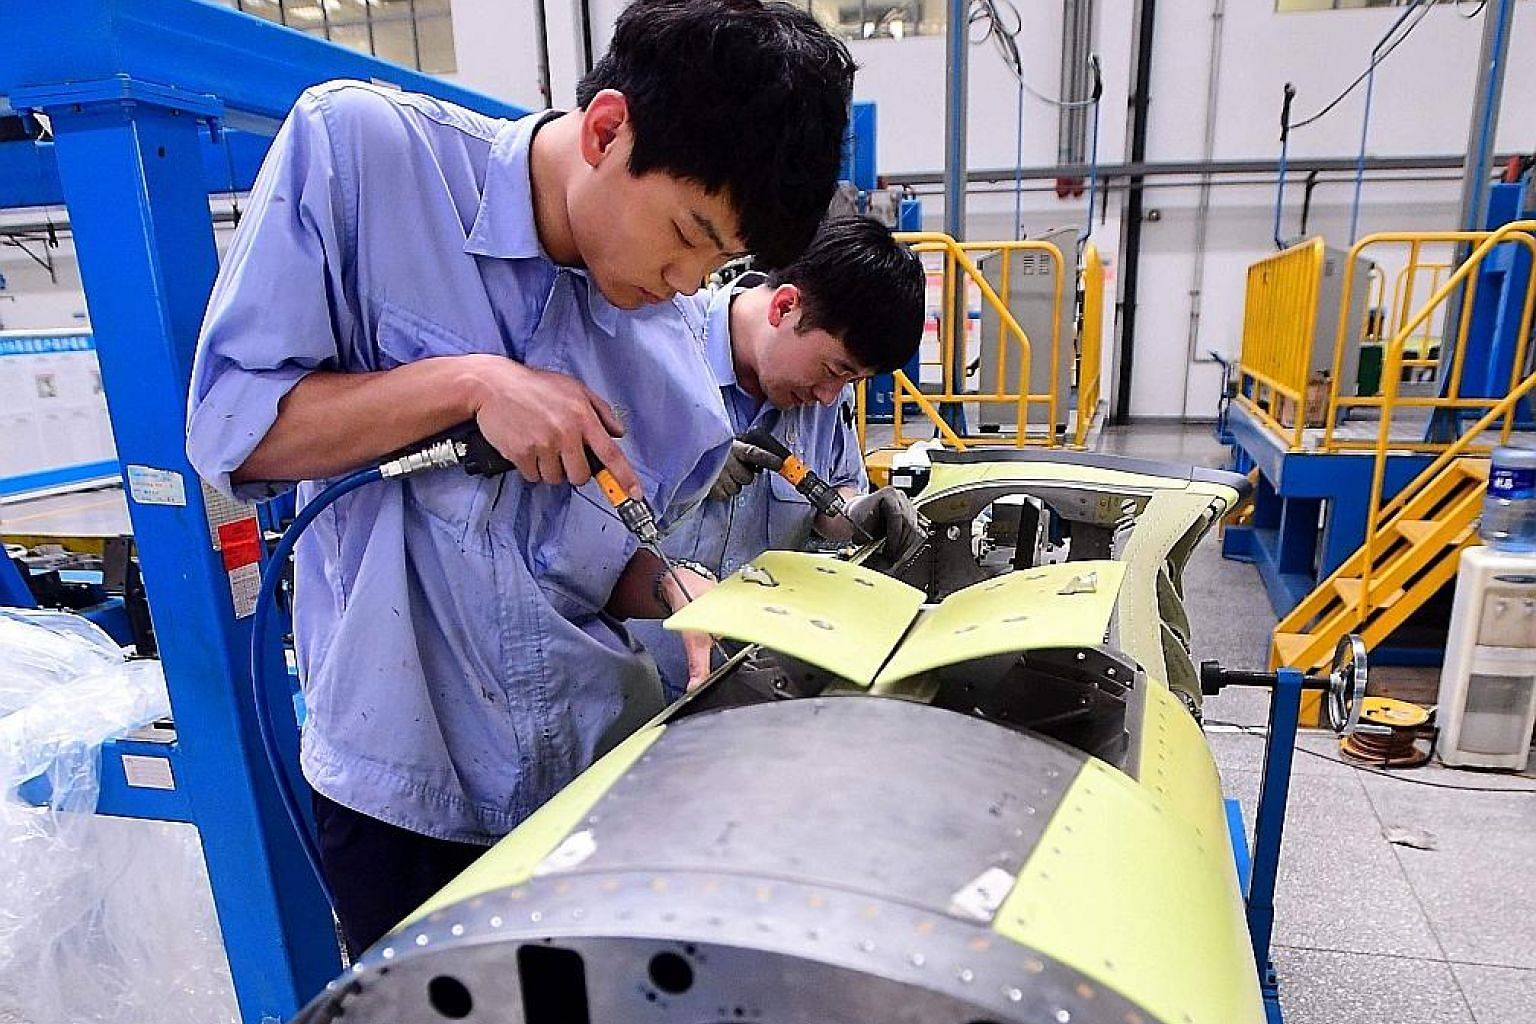 Chinese employees working on the engine of a passenger jet at a factory in Shenyang in China's north-eastern Liaoning province. Thousands of products are made with components sourced from multiple countries. Many of them go to China for final assembl